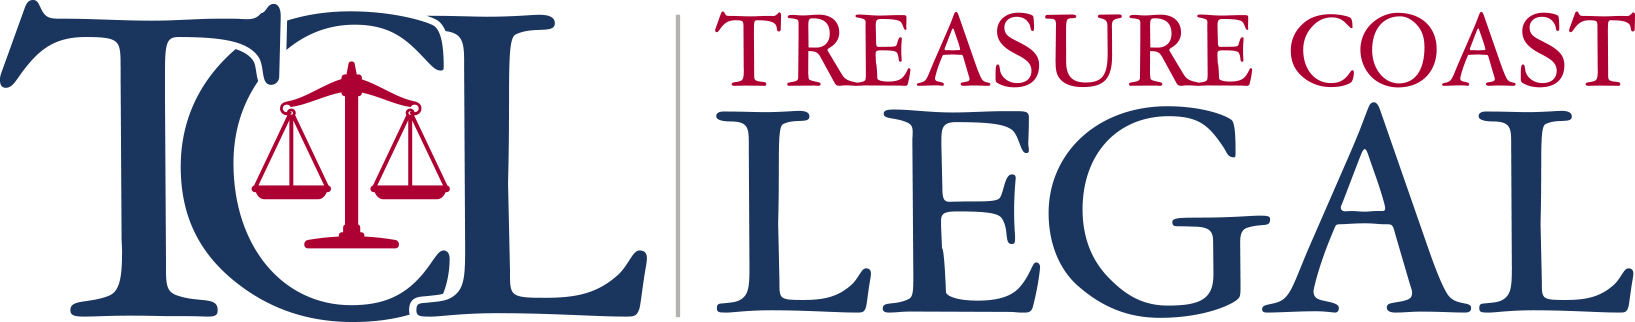 Treasure Coast Legal